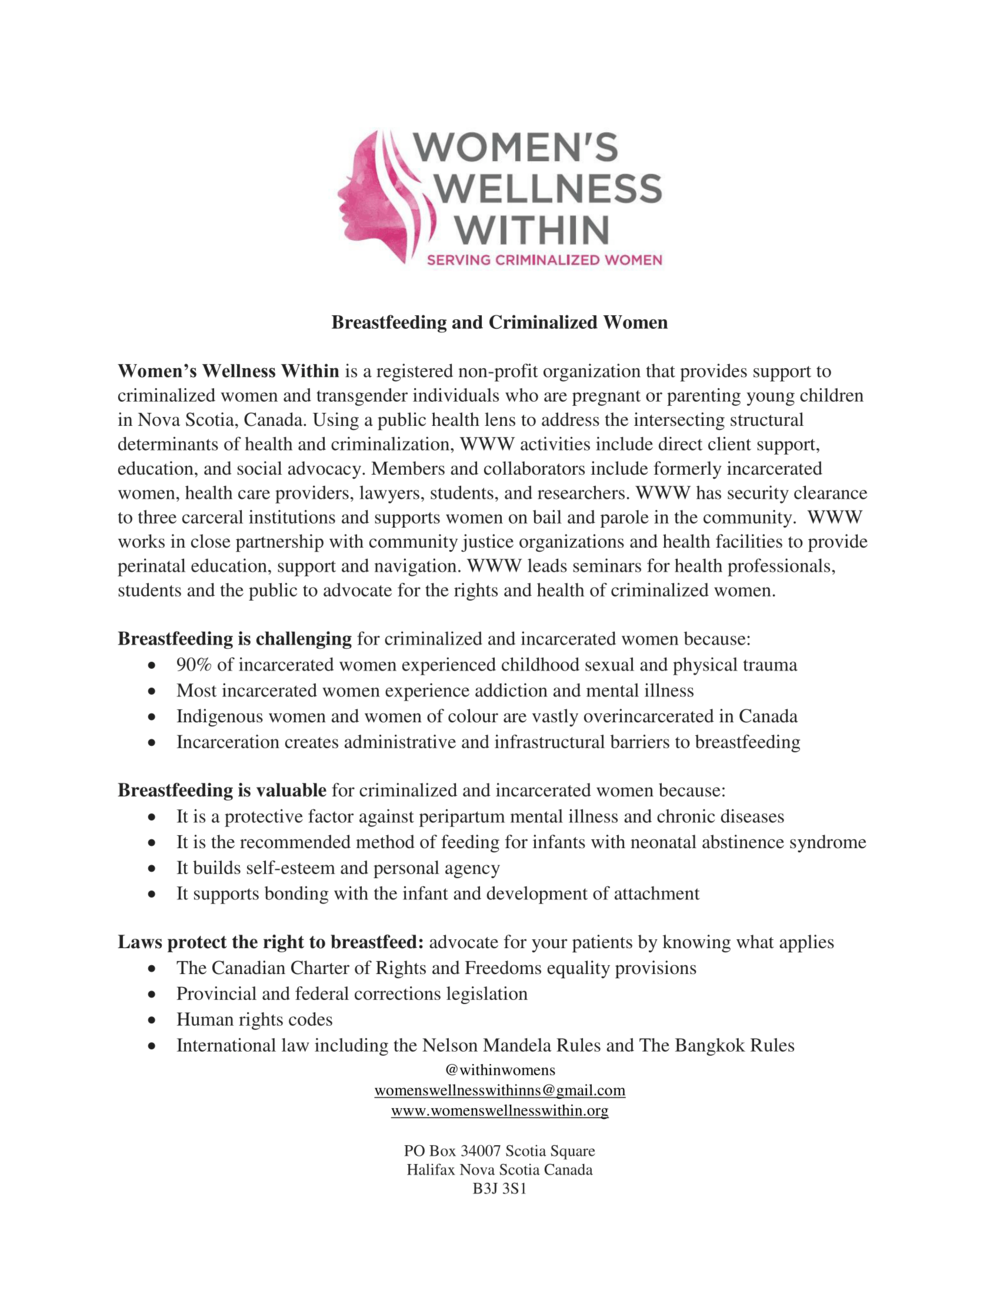 Handout Breastfeeding Incarcerated Women 20180309-1.png